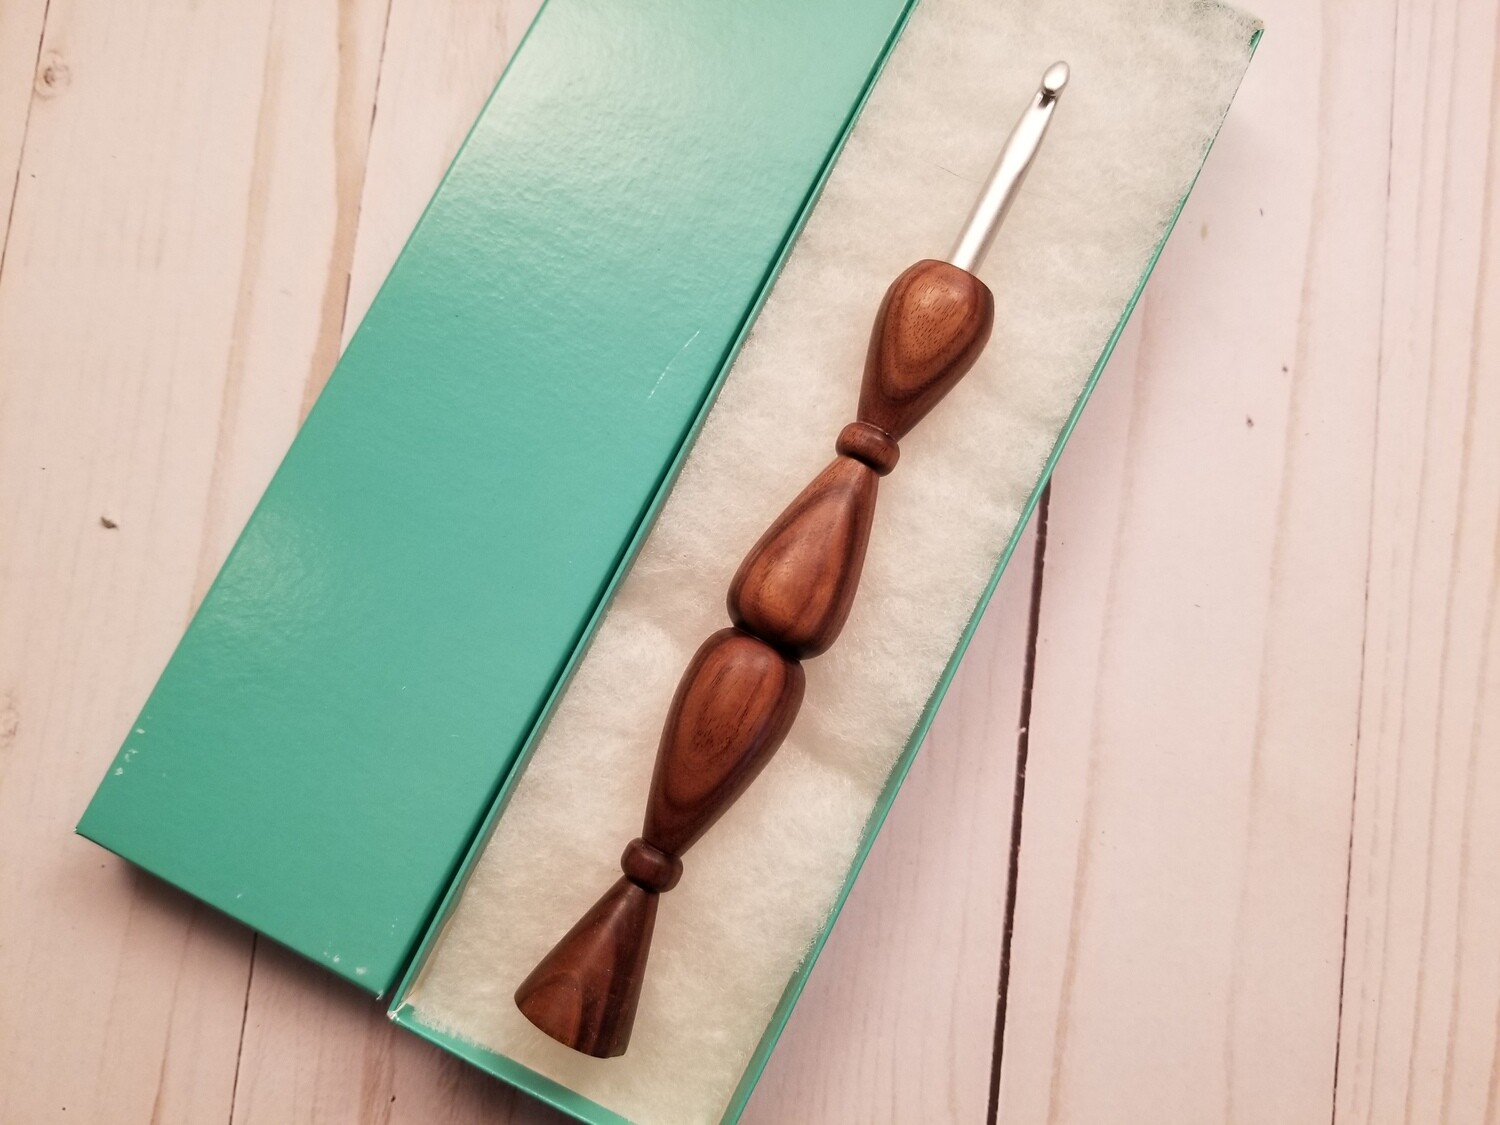 Bow-tie Vine Crochet Hook